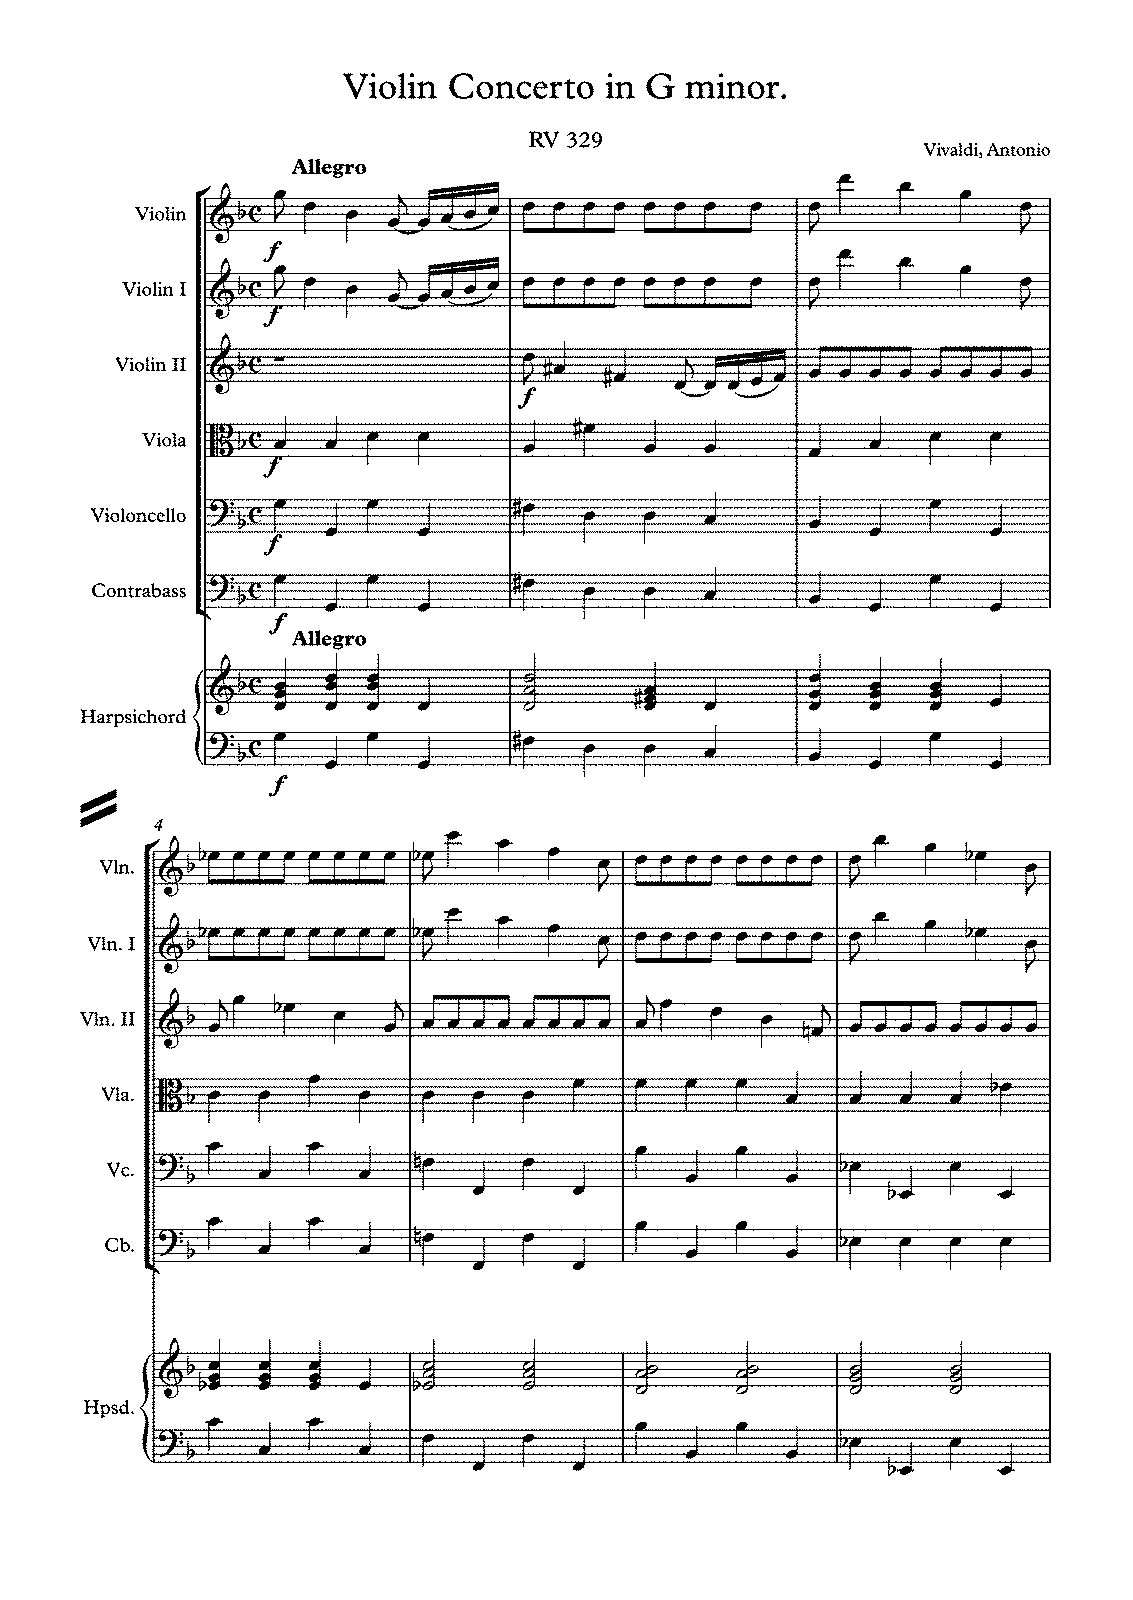 PMLP111566-Antonio Vivaldi - Violin Concerto in G minor, RV329.pdf